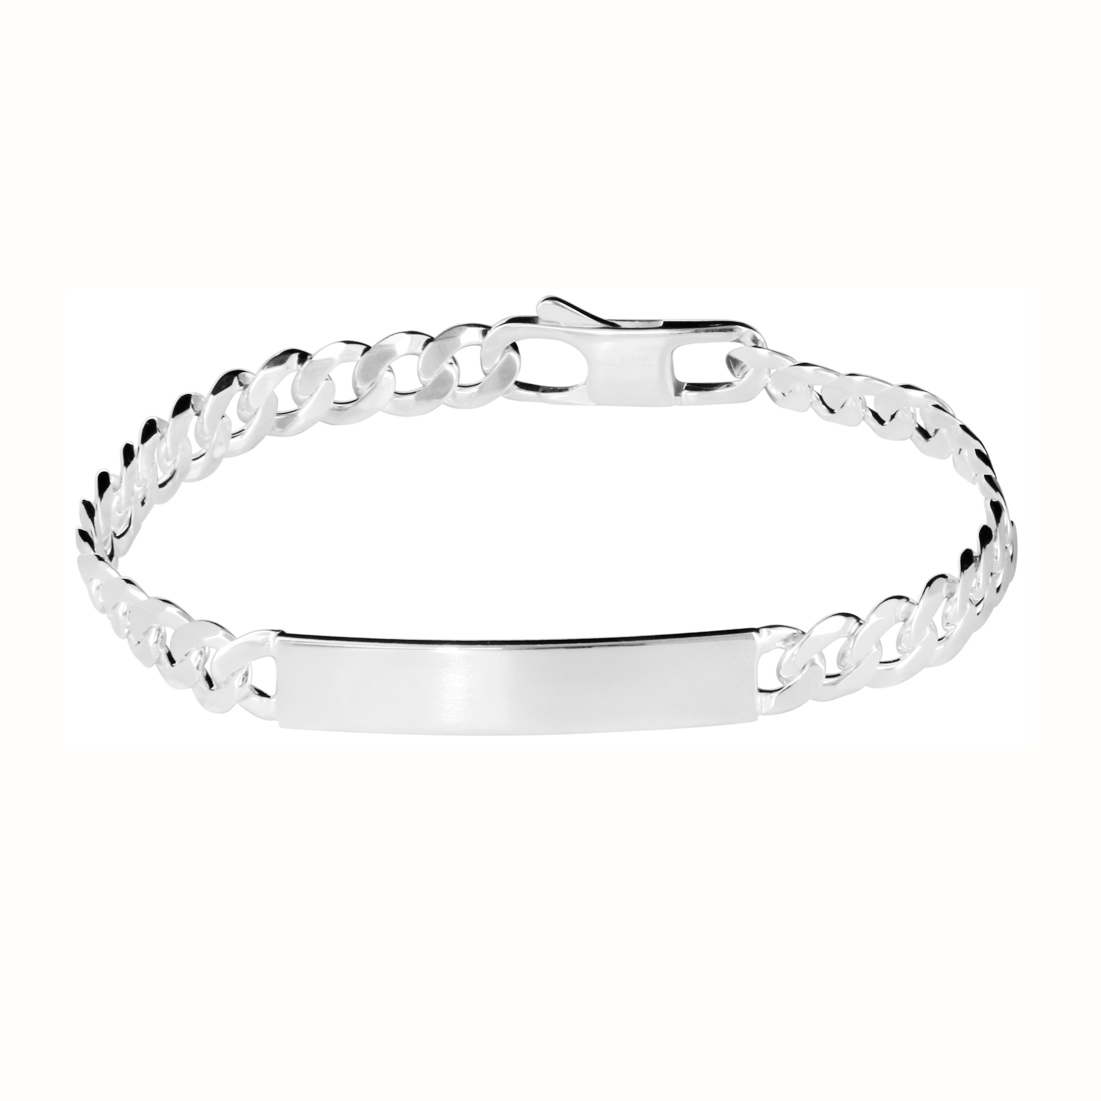 Gourmette femme argent 4 mm maille gourmette - MARLA